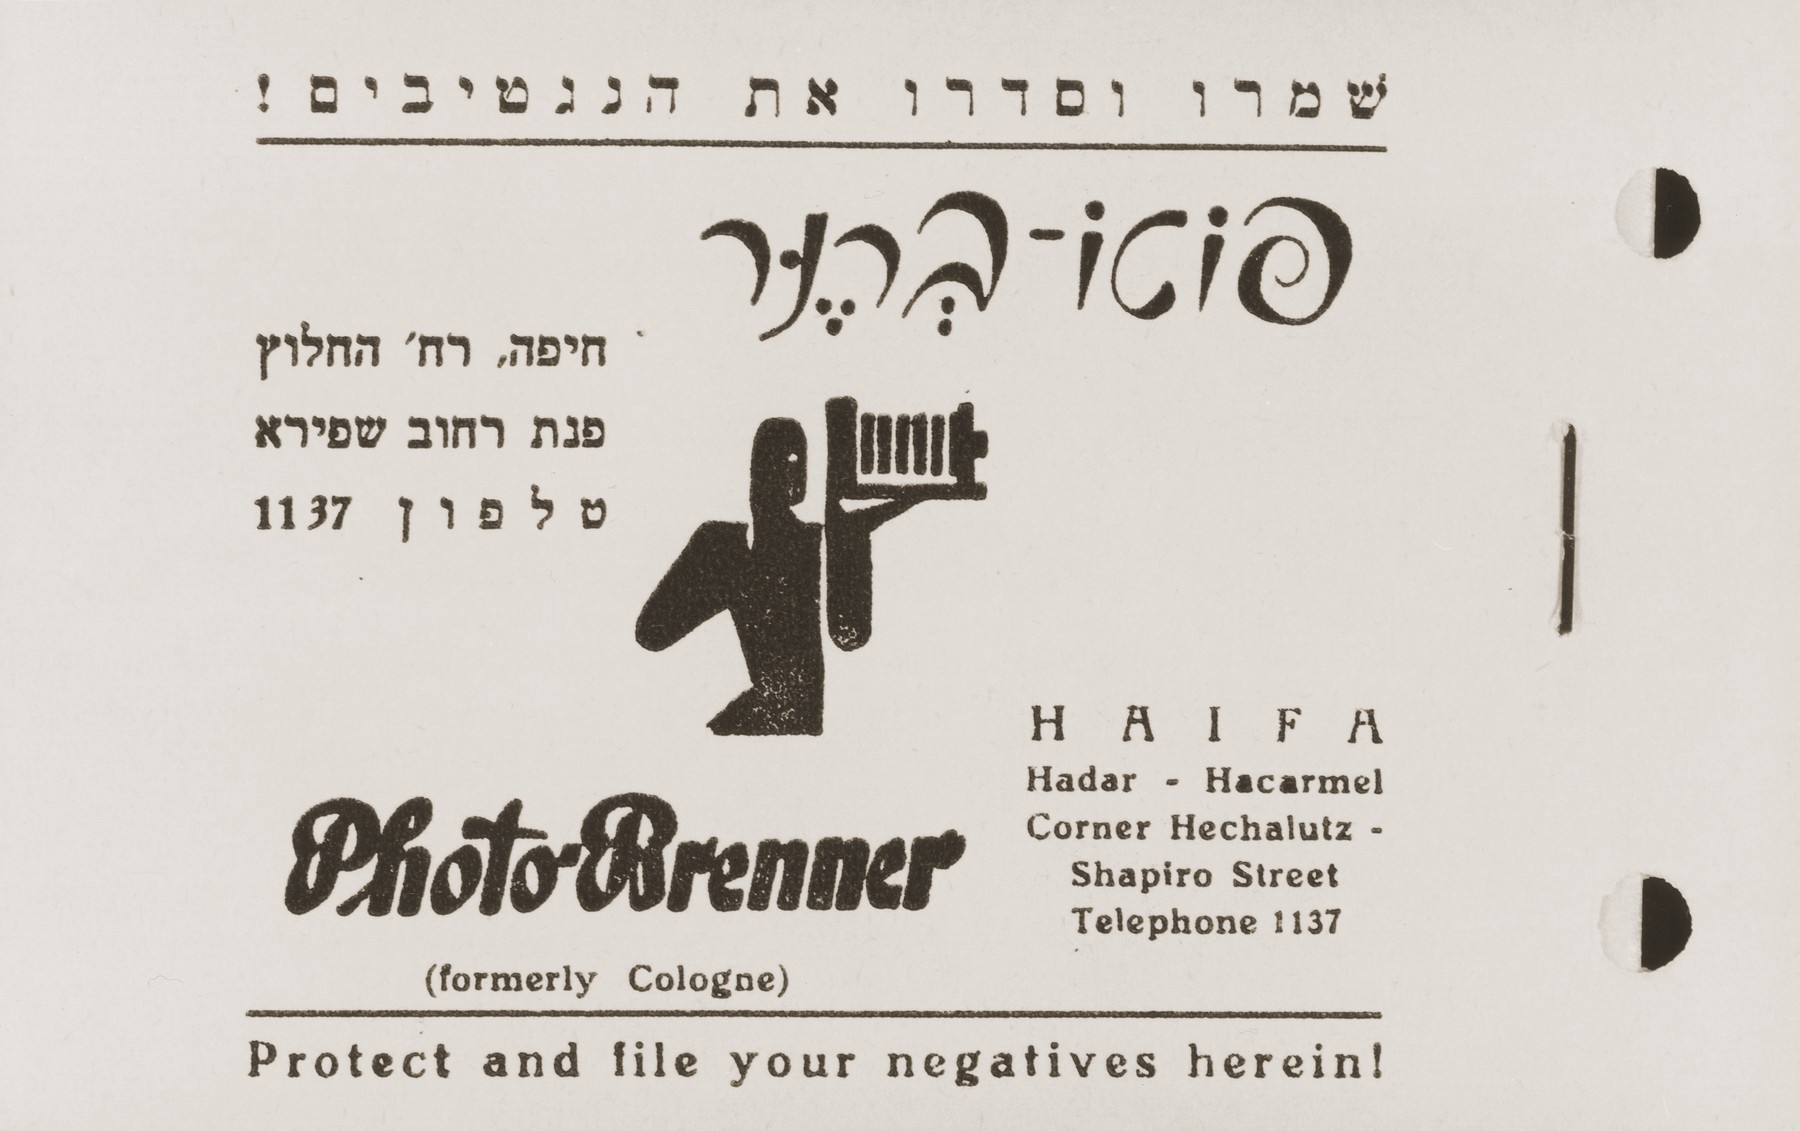 Printed negative sleeve bearing an advertisement for the Photo-Brenner photography company (formerly of Cologne) located in Haifa.